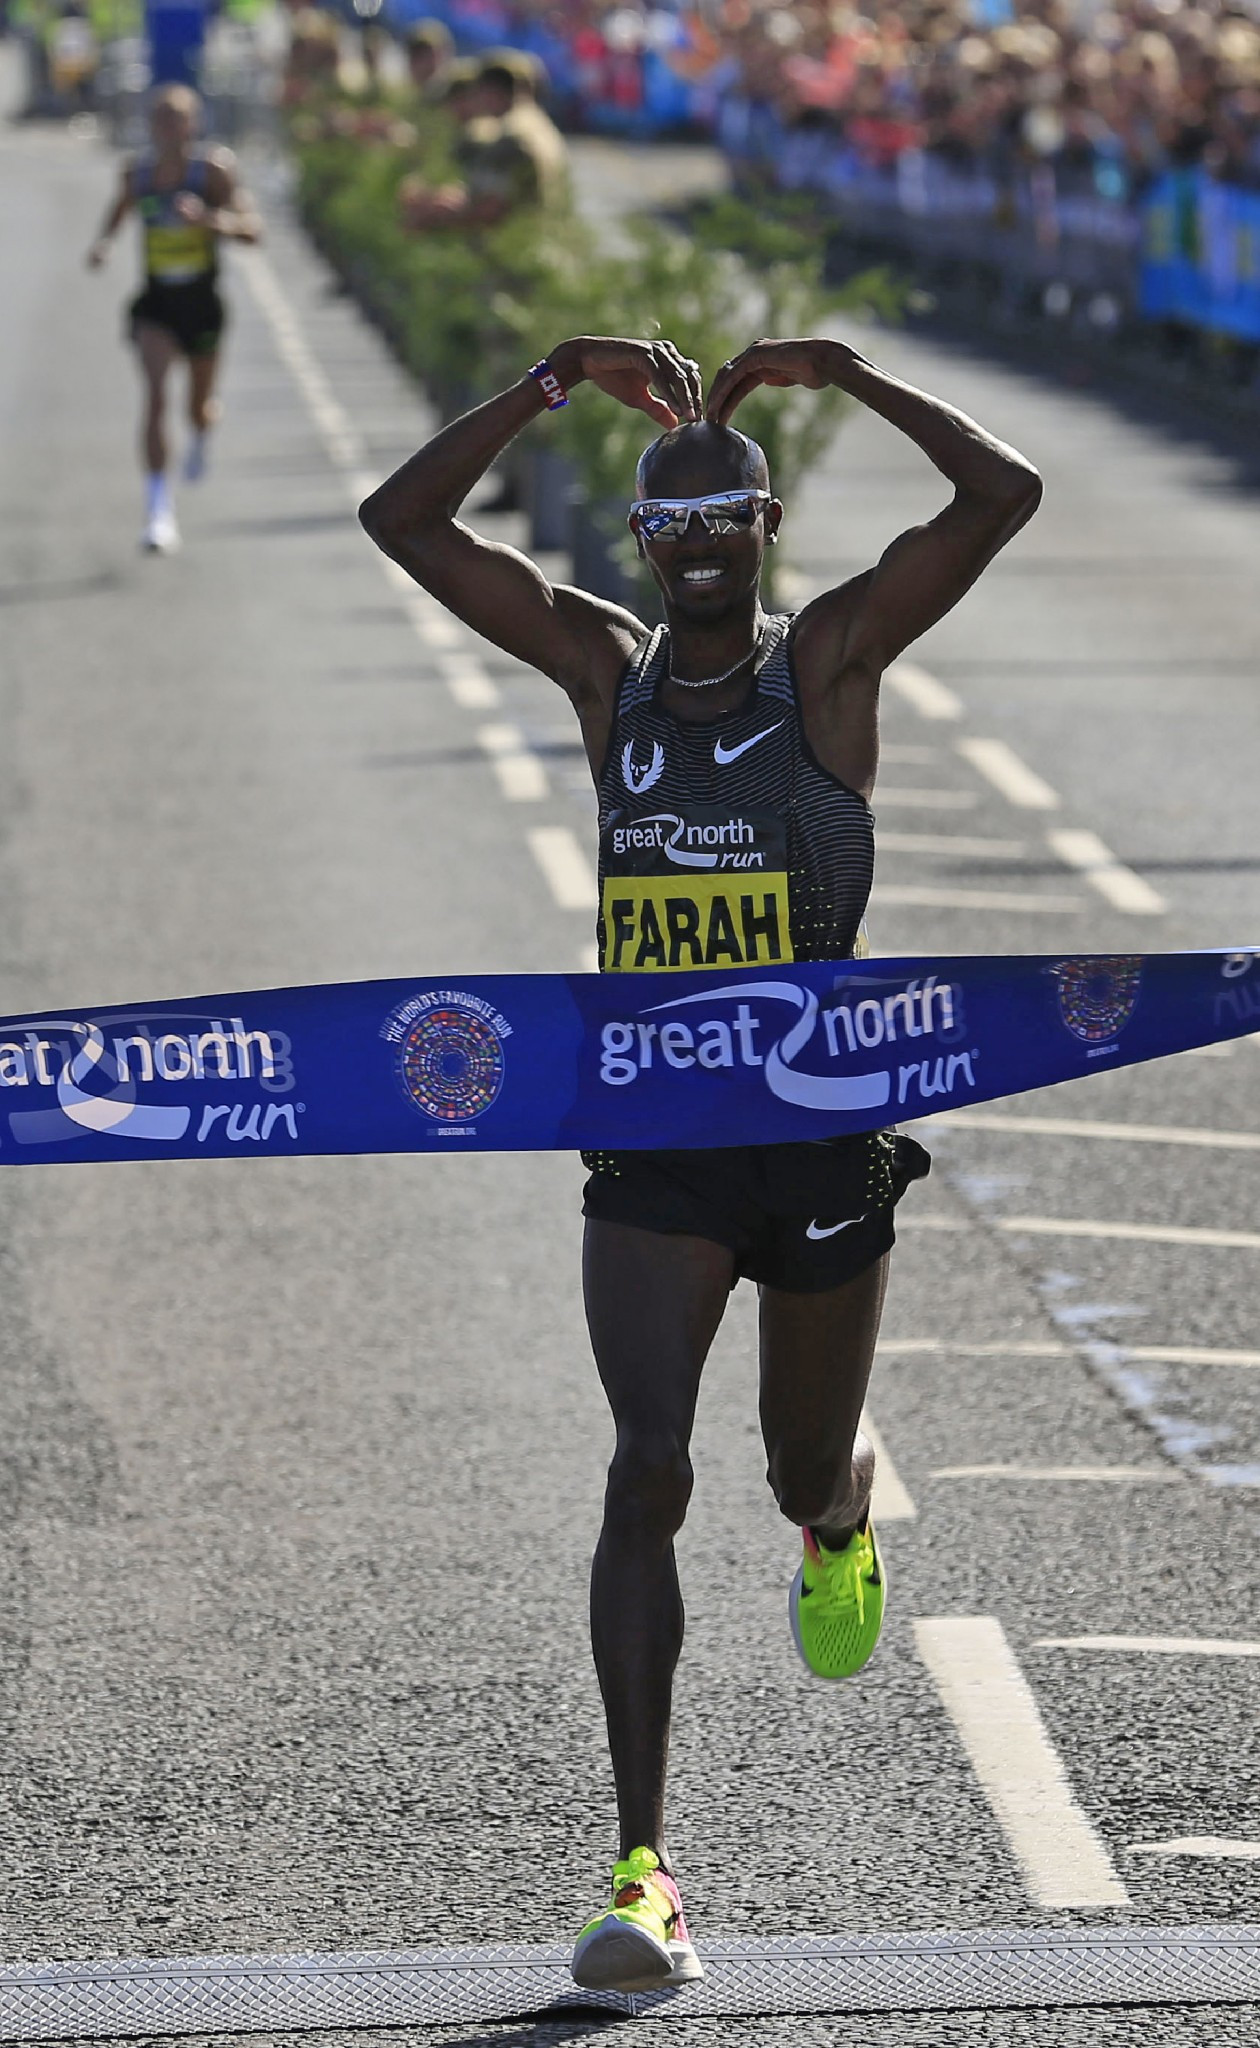 Britain's Sir Mo Farah winning a third consecutive Great North Run title last year - but Ethiopia's Olympic marathon silver medallist Feyisa Lilesa will test his ambitions of winning a fourth title tomorrow ©Getty Images